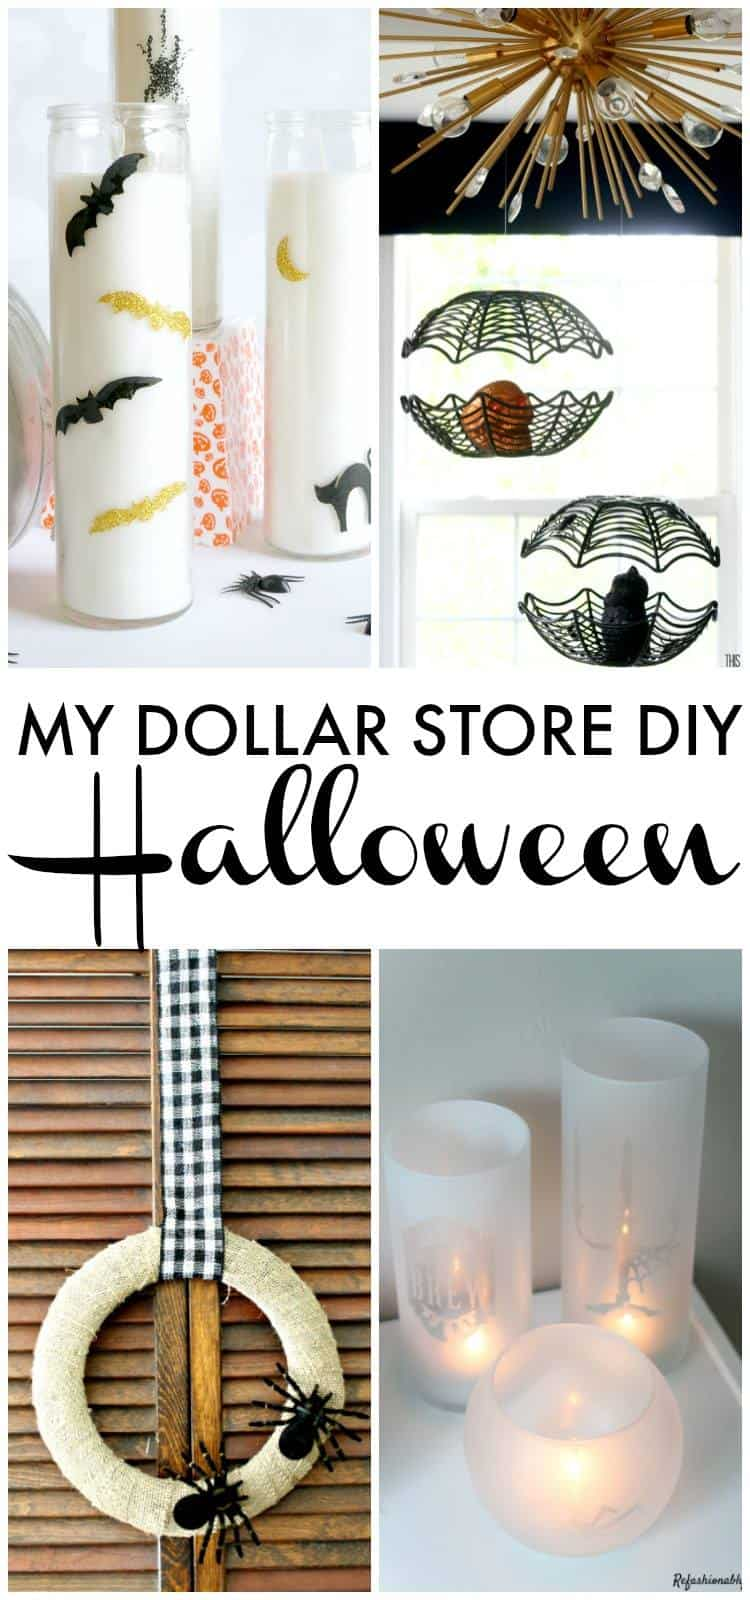 Dollar Store Halloween Projects